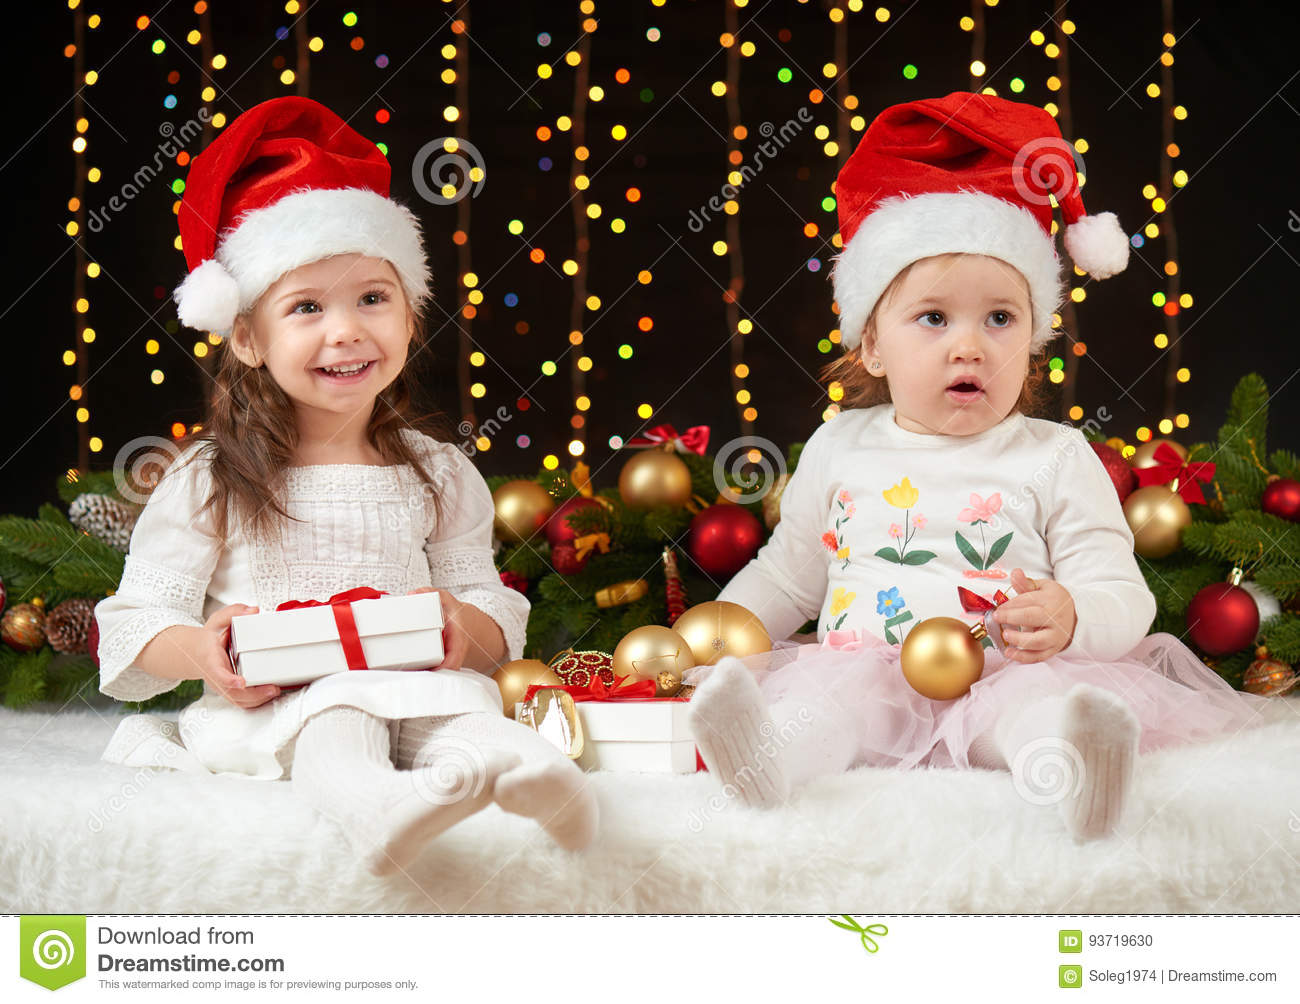 Child girl portrait in christmas decoration, happy emotions, winter holiday concept, dark background with illumination and boke li